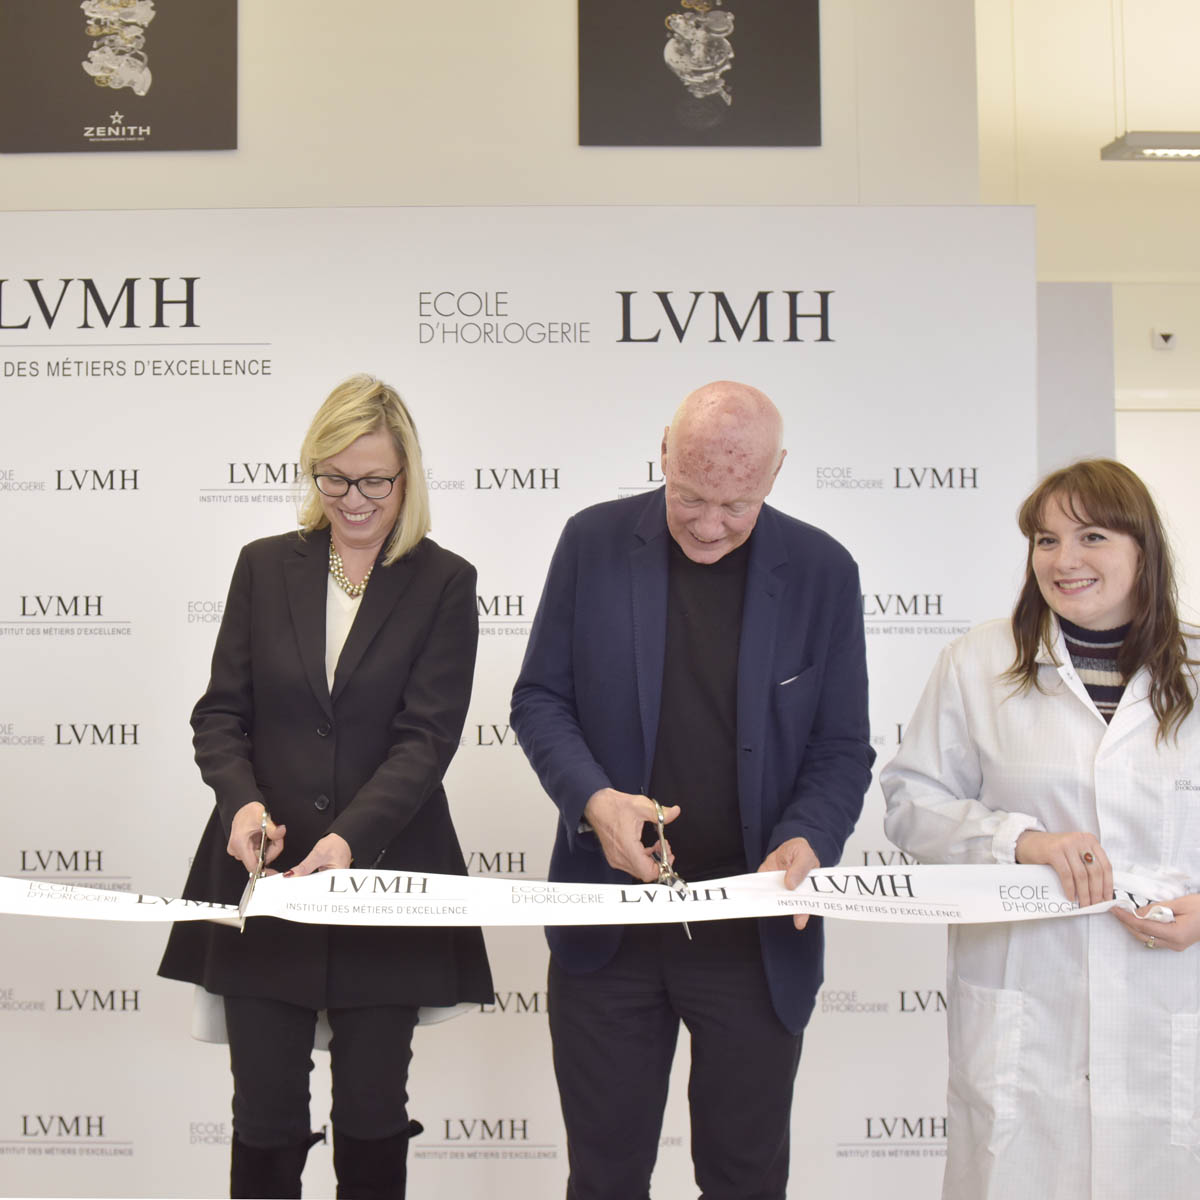 The Watch Quote: Photo - TAG Heuer and Zenith join forces to create the LVMH School of Watchmaking